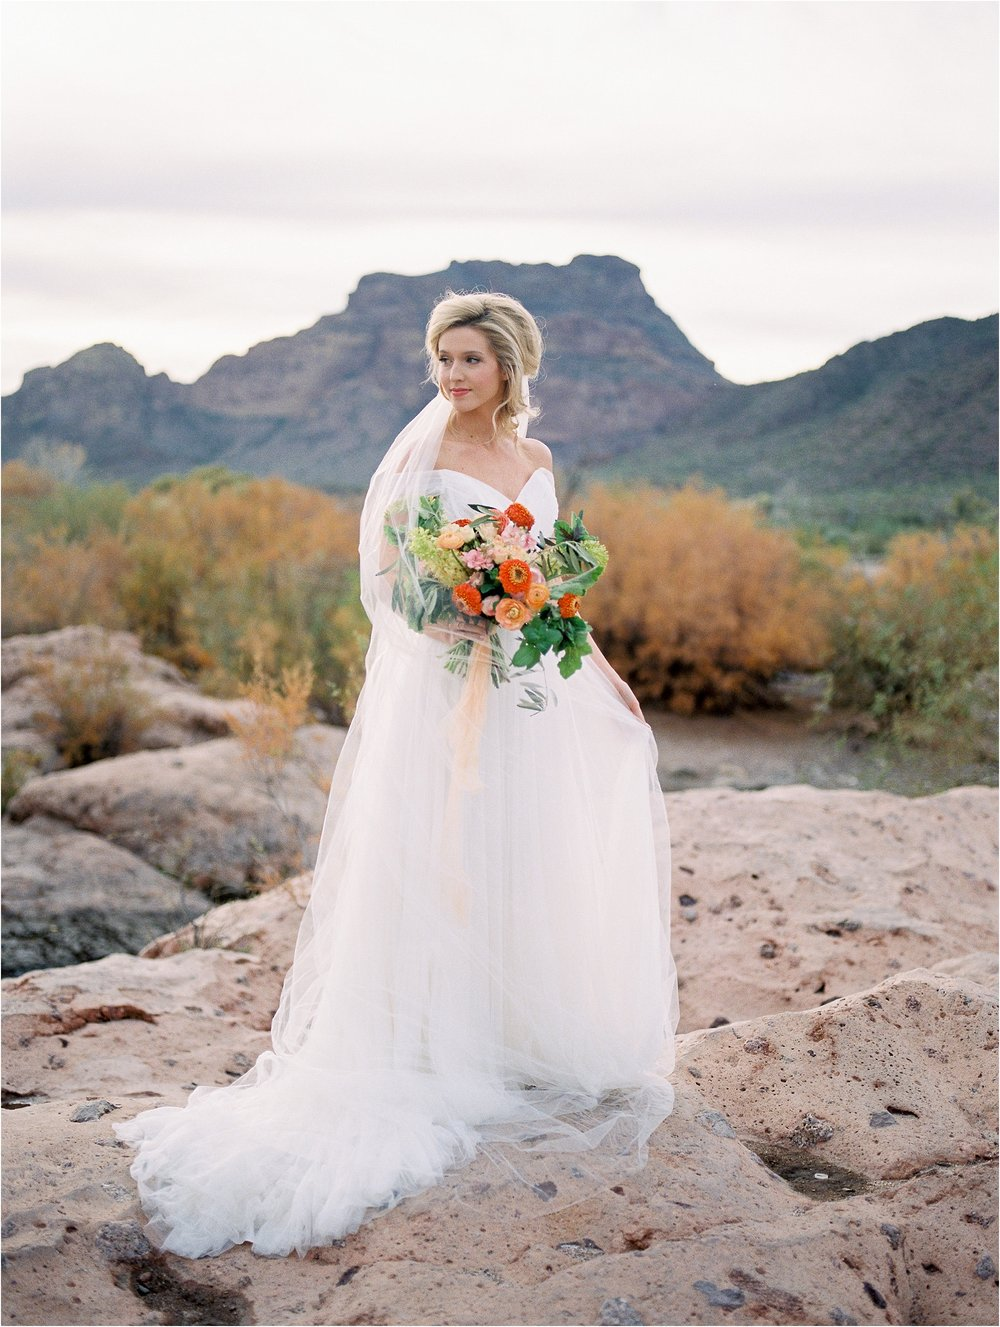 Sarah Jane Photography Film Hybrid Scottsdale Phoenix Arizona Destination Wedding Photographer Ally Ryan Desert_0003.jpg